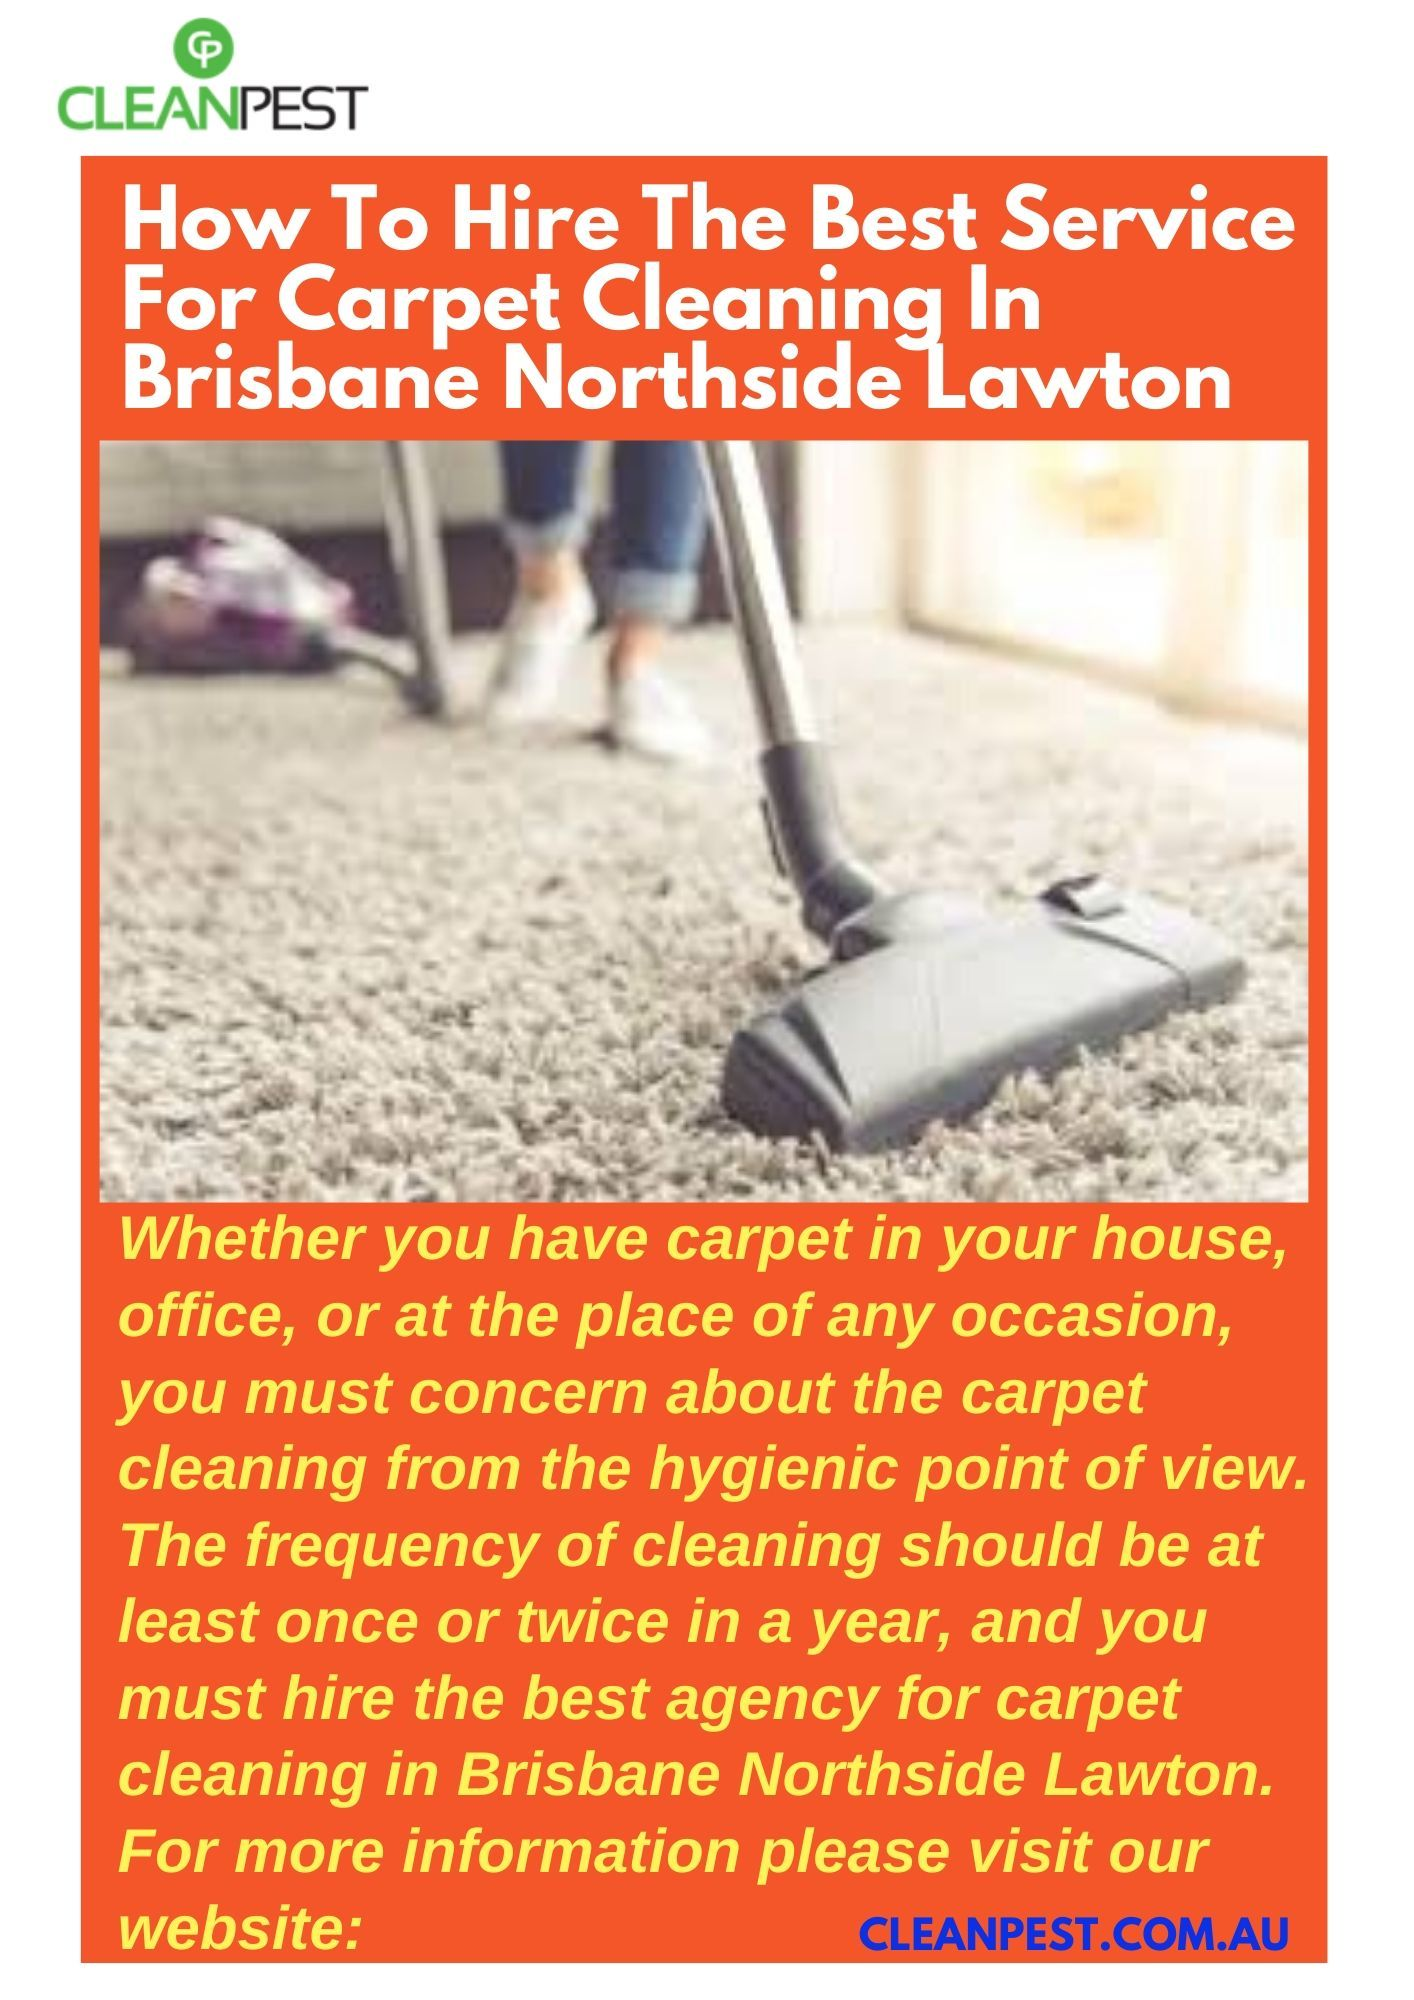 How To Hire The Best Service For Carpet Cleaning In Brisbane Northside Lawton In 2020 How To Clean Carpet Cleaning Good Things